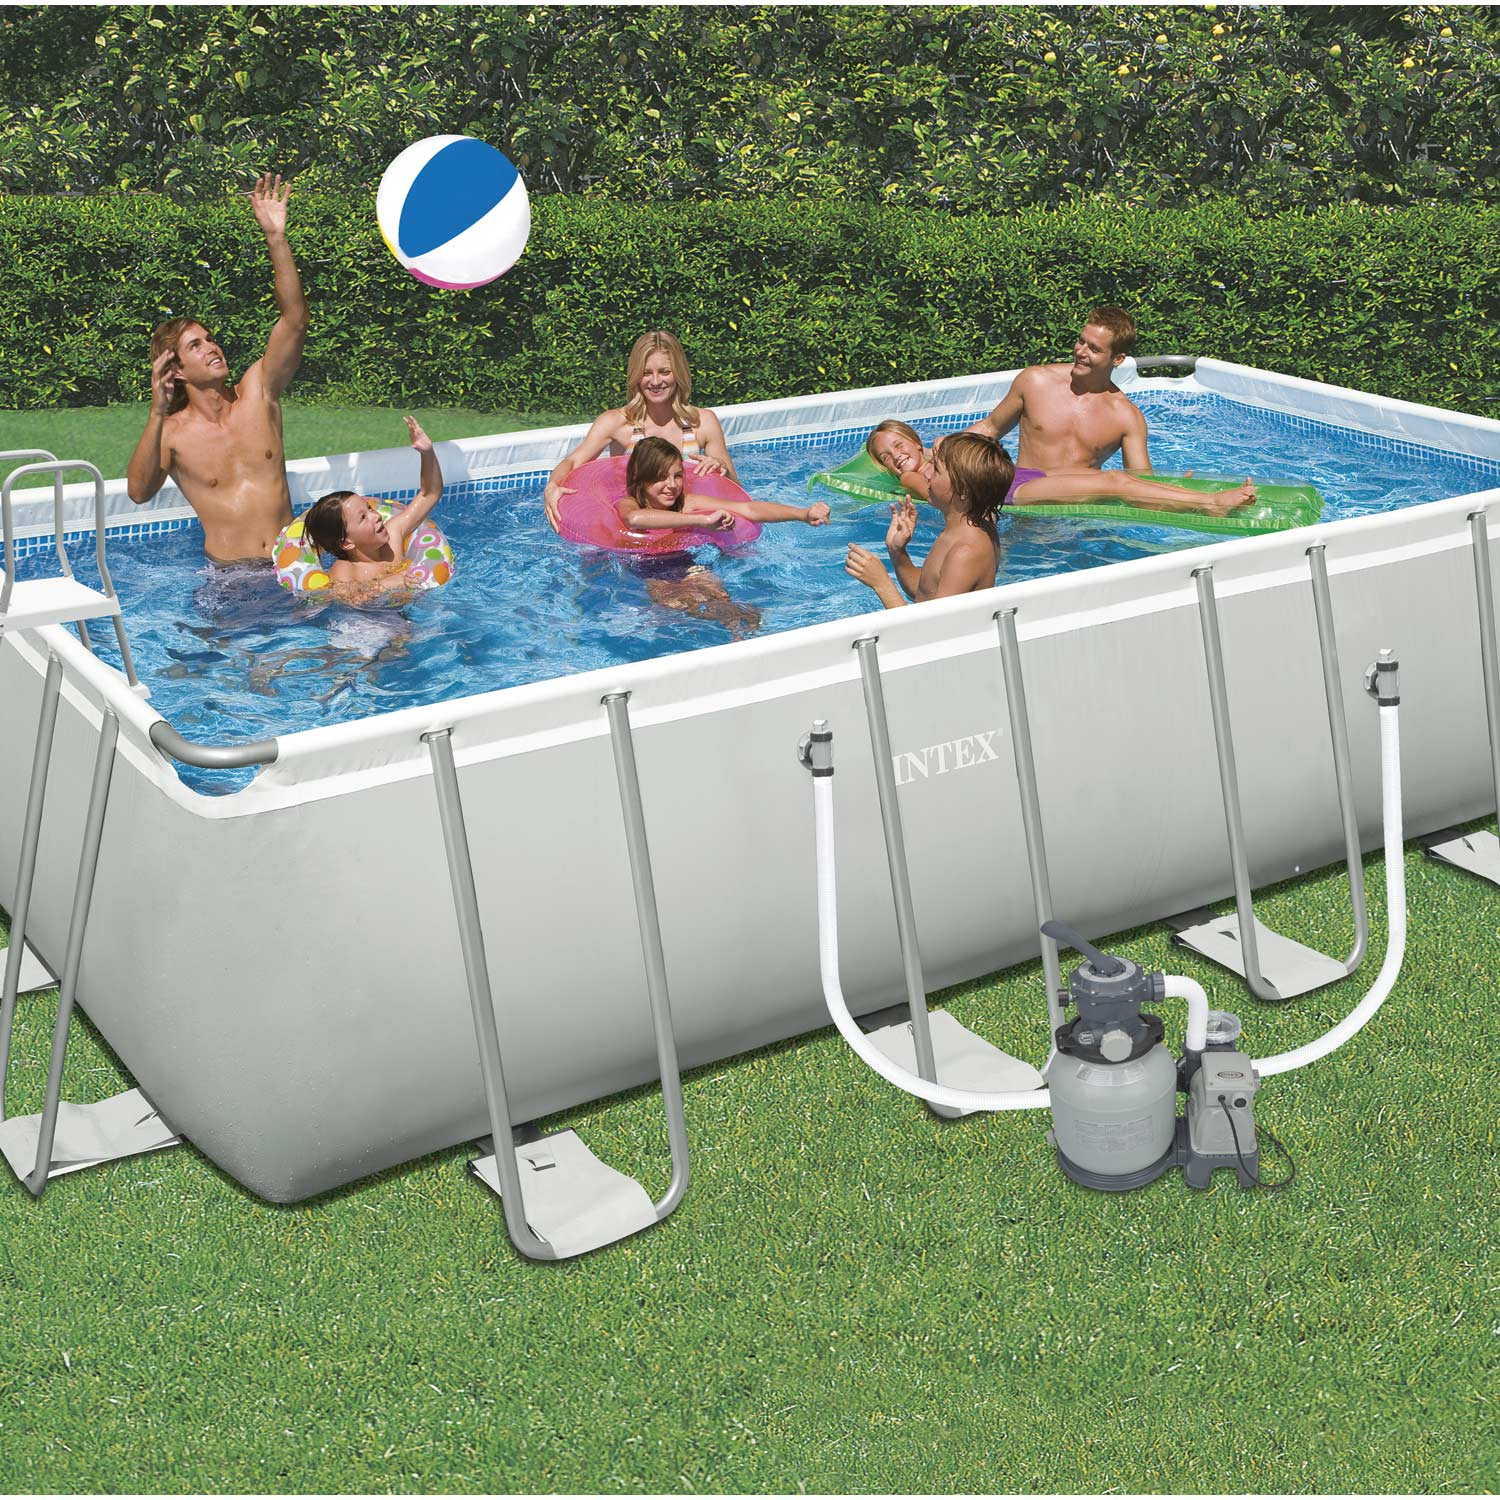 Piscine hors sol autoportante tubulaire ultra silver intex for Prix piscine 6 x 3